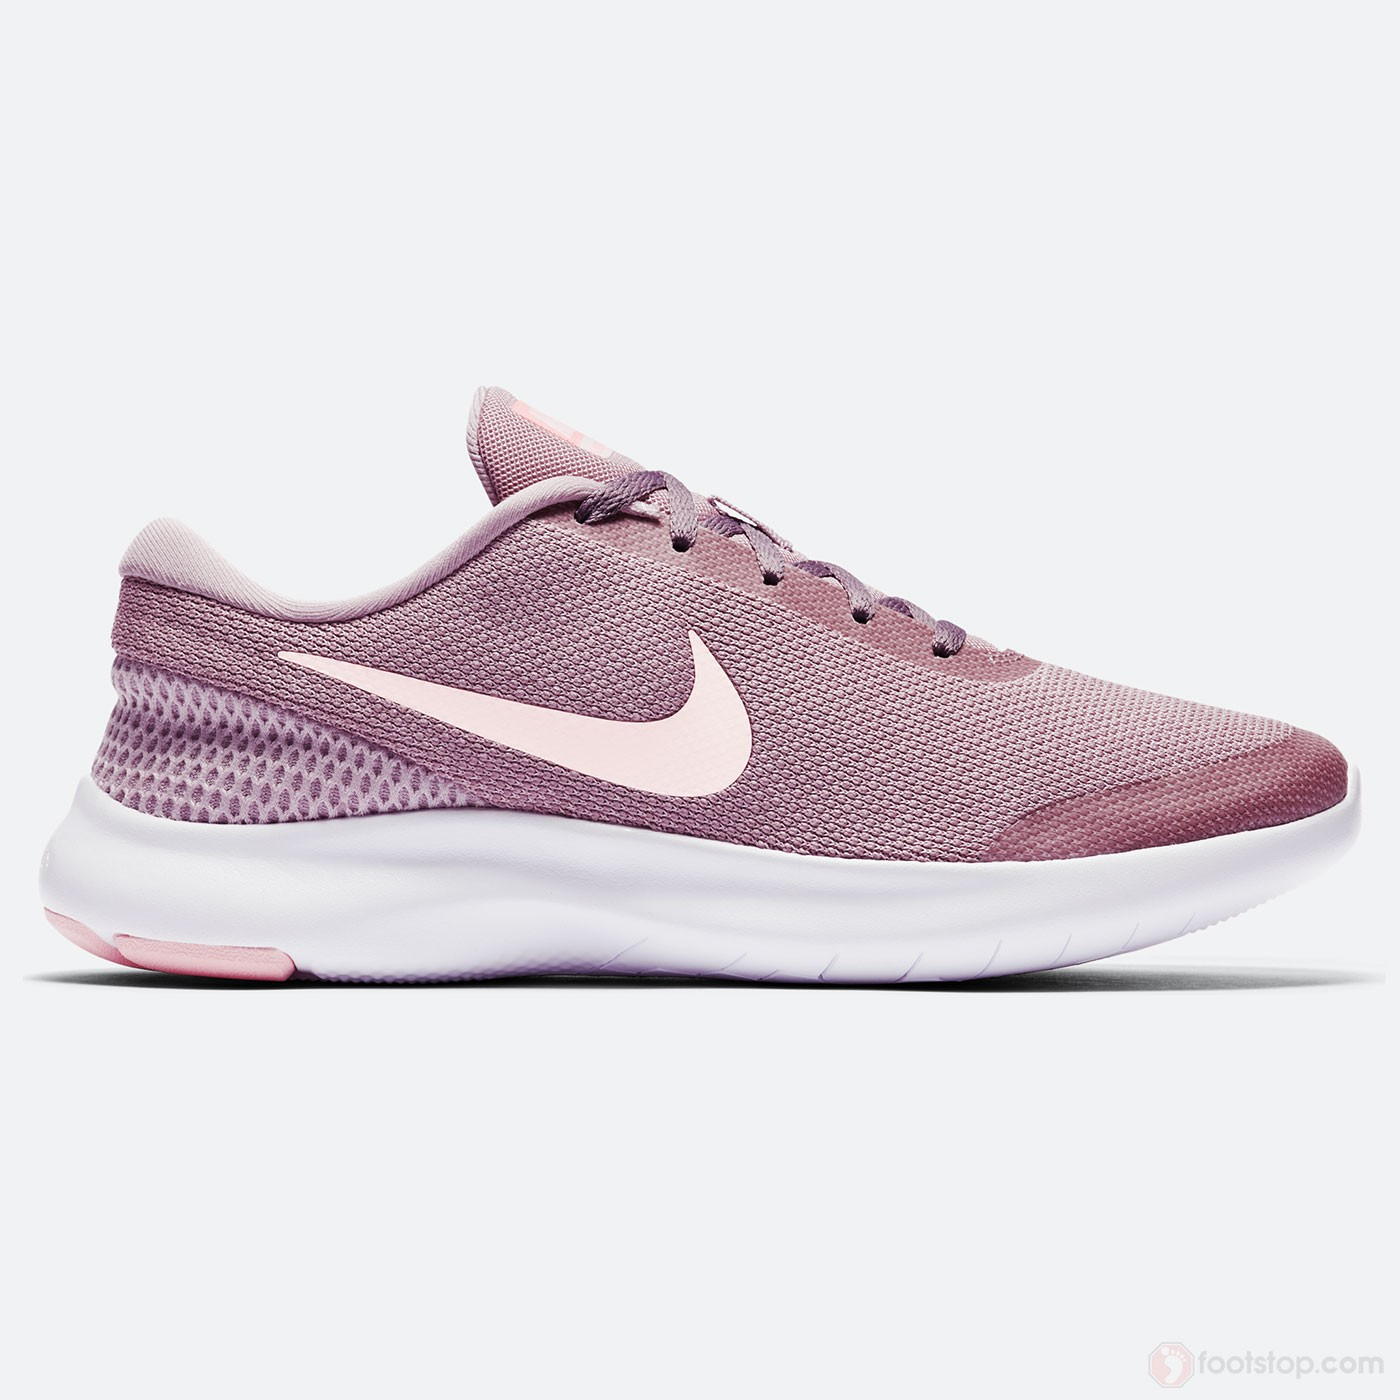 Nike Flex Experience Rn 7 (Rose/Artic Punch) - Dames 908996 600